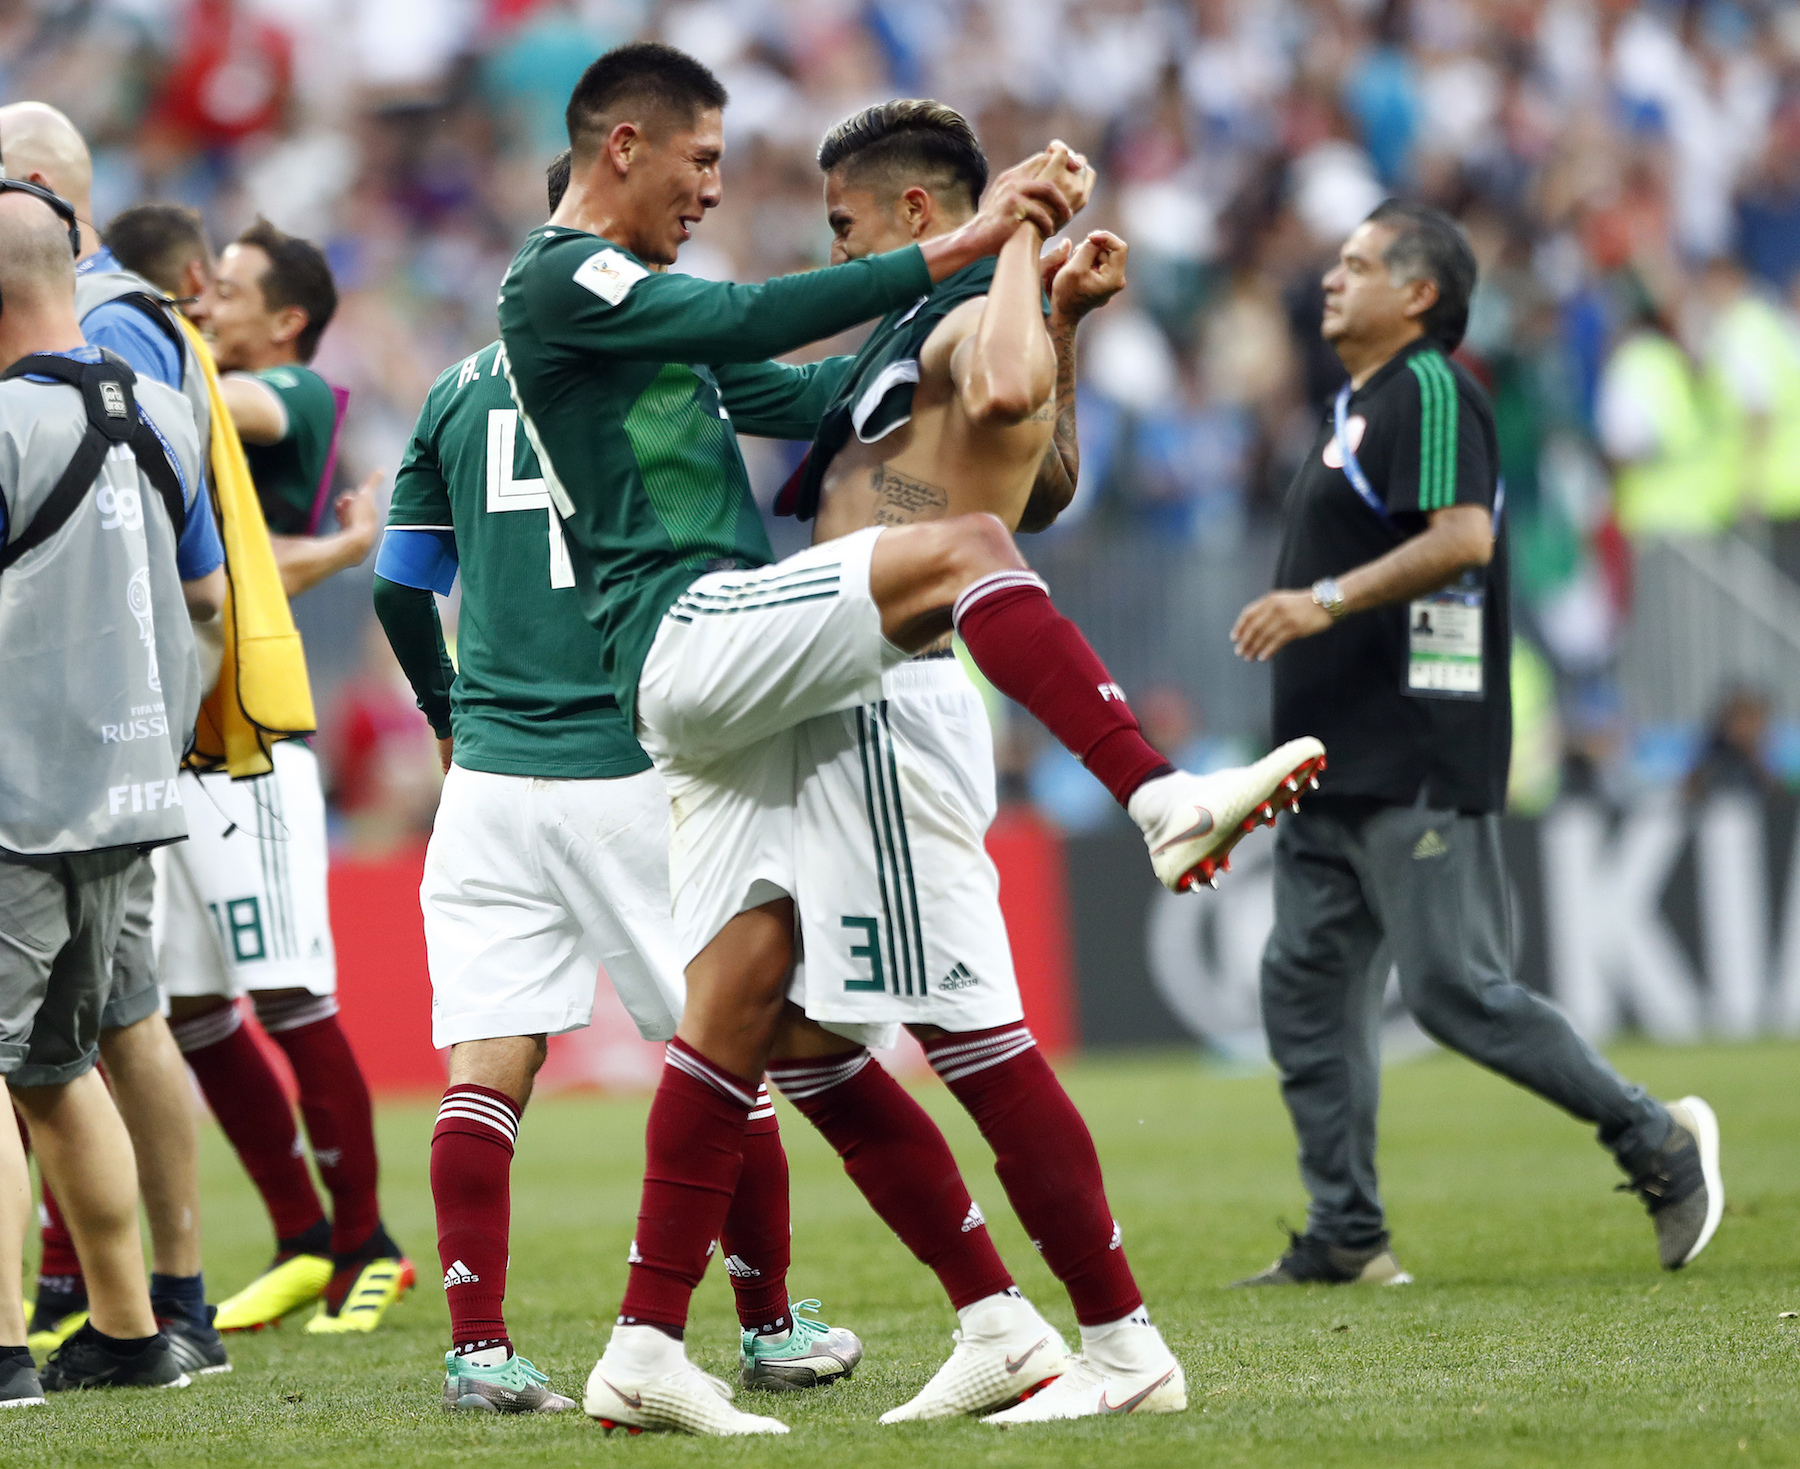 "<div class=""meta image-caption""><div class=""origin-logo origin-image ap""><span>AP</span></div><span class=""caption-text"">Mexico players celebrate after winning the group F match between Germany and Mexico at the 2018 soccer World Cup in the Luzhniki Stadium in Moscow, Russia. (AP Photo/Matthias Schrader)</span></div>"